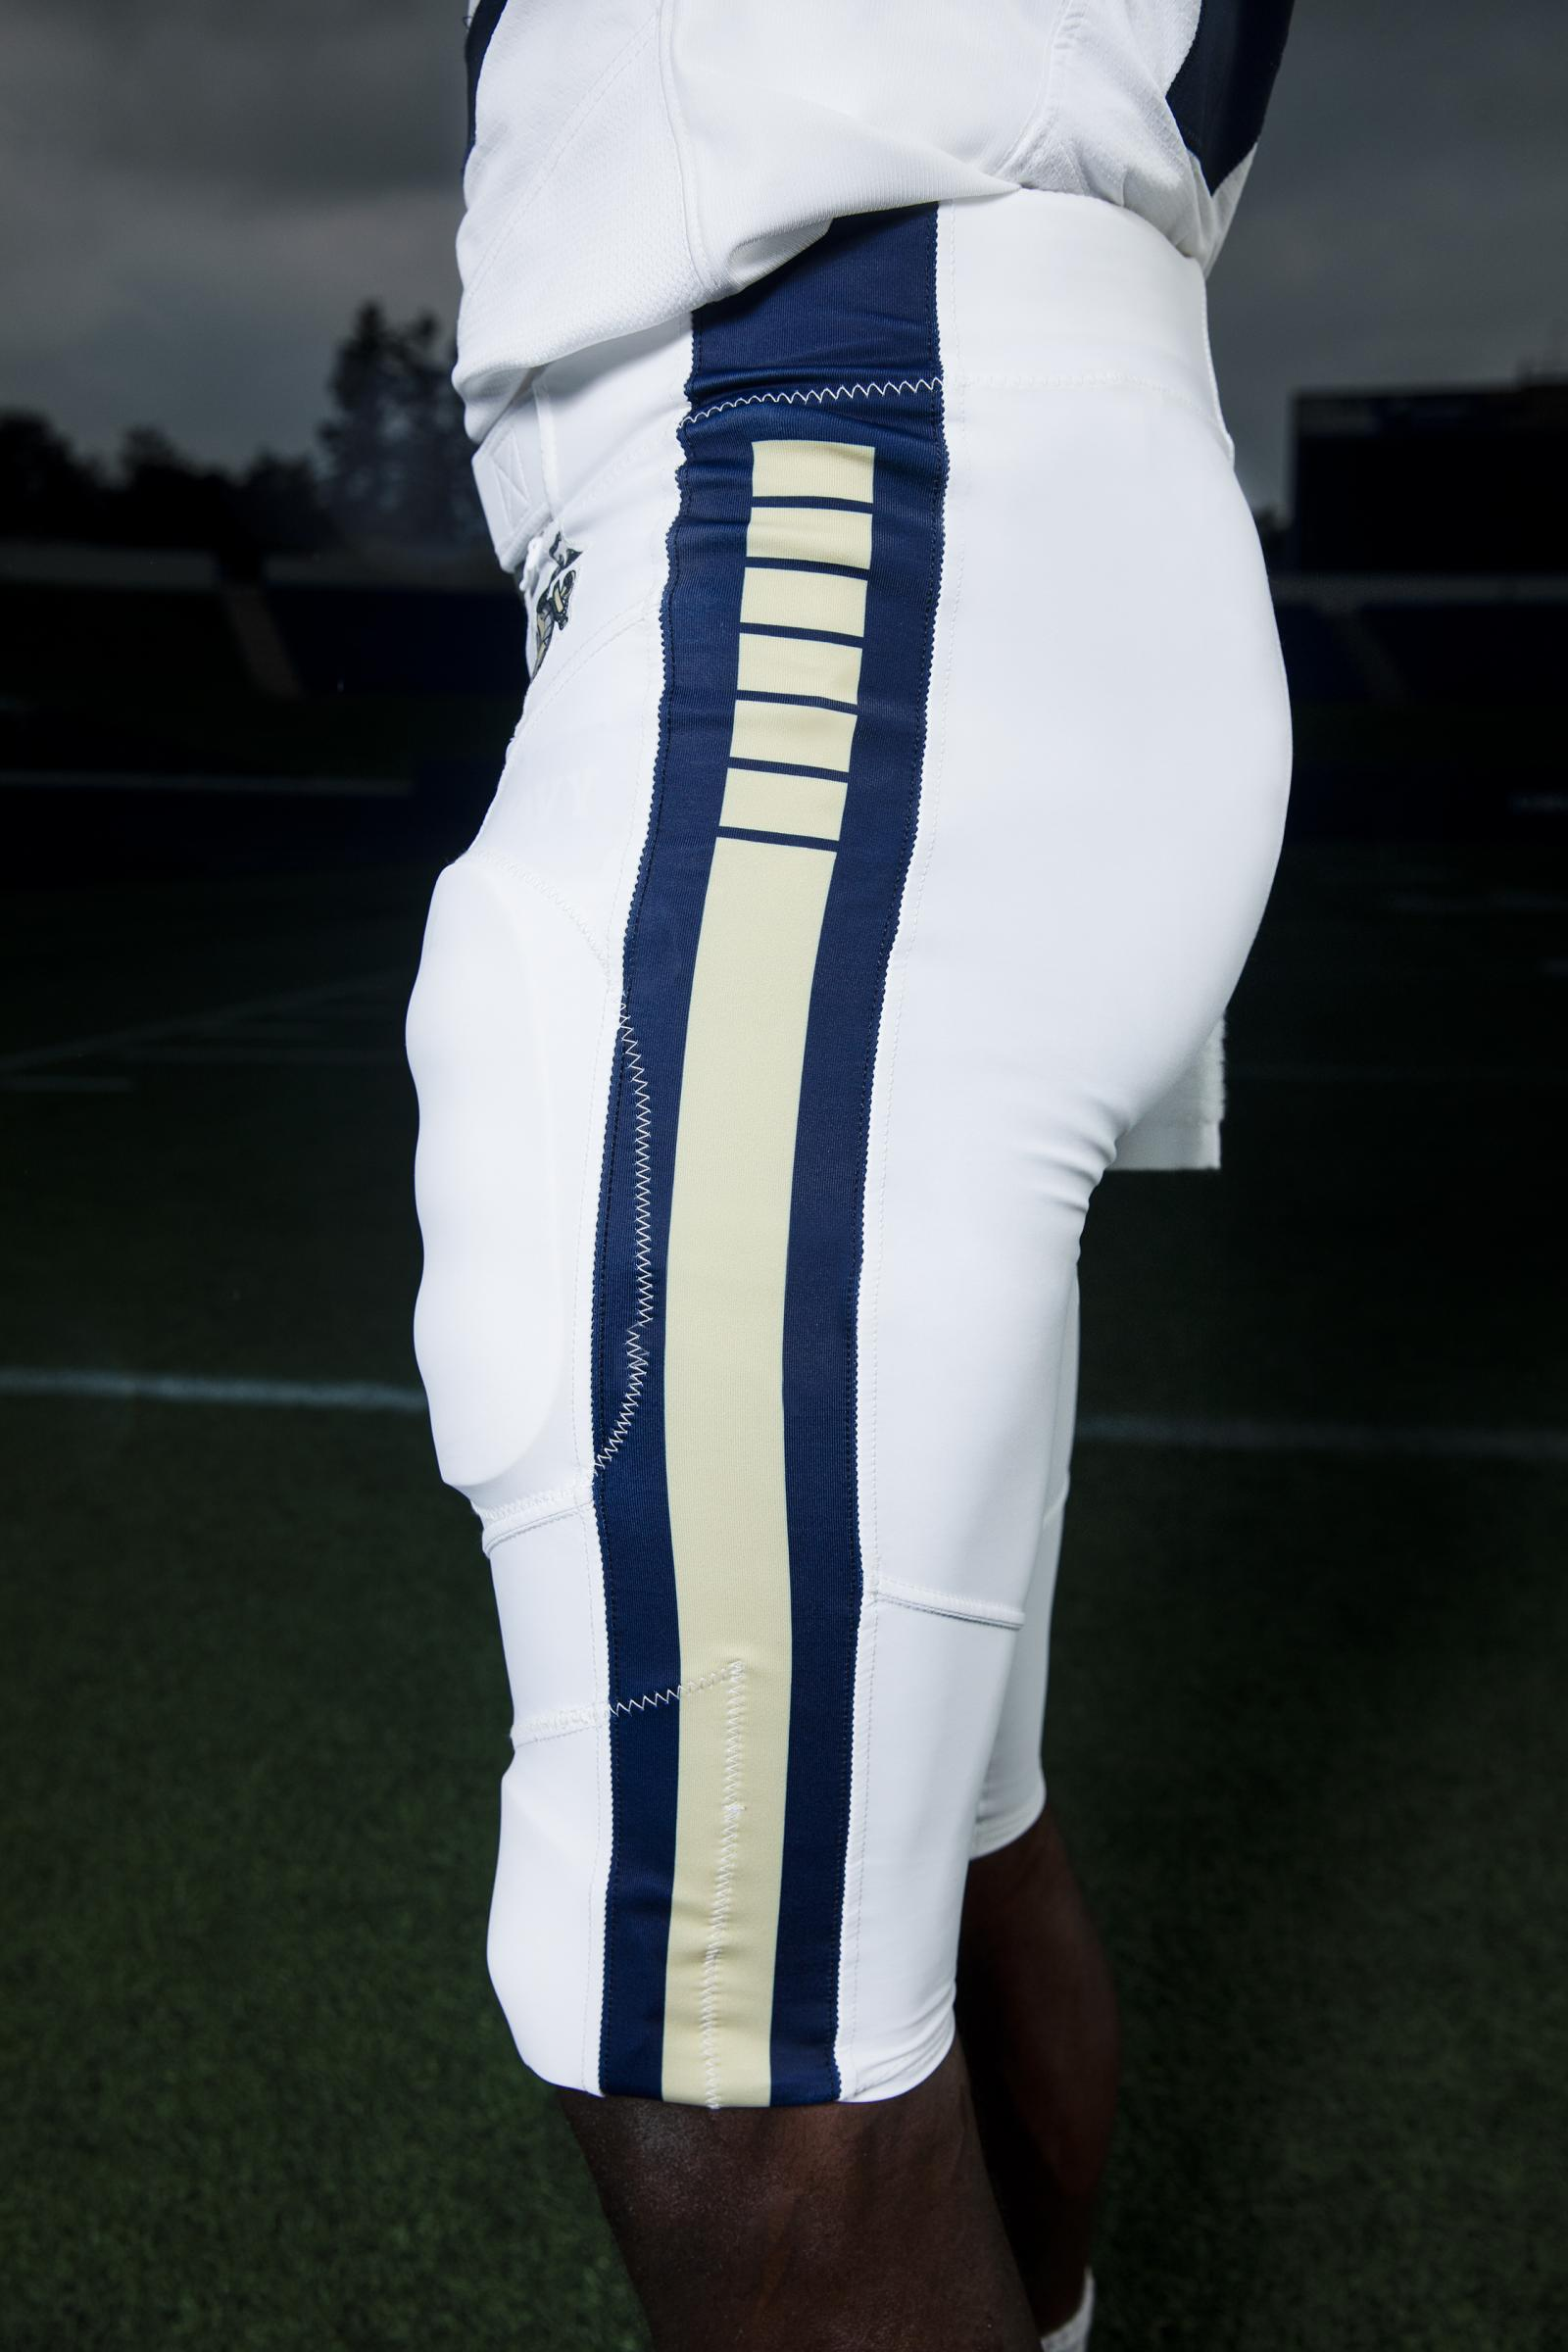 To match the jersey, the pants were designed in the same shade of navy blue with a stripe down the panel featuring six breaks. This same design is echoed on the helmet, since the United States Navy was founded by Congress with six frigates.  The one consistent element that this uniform shares with Navy's current standard uniforms is the Eagle, Globe and Anchor, the official emblem and insignia of the United States Marine Corps, which is seen on the pant hip.